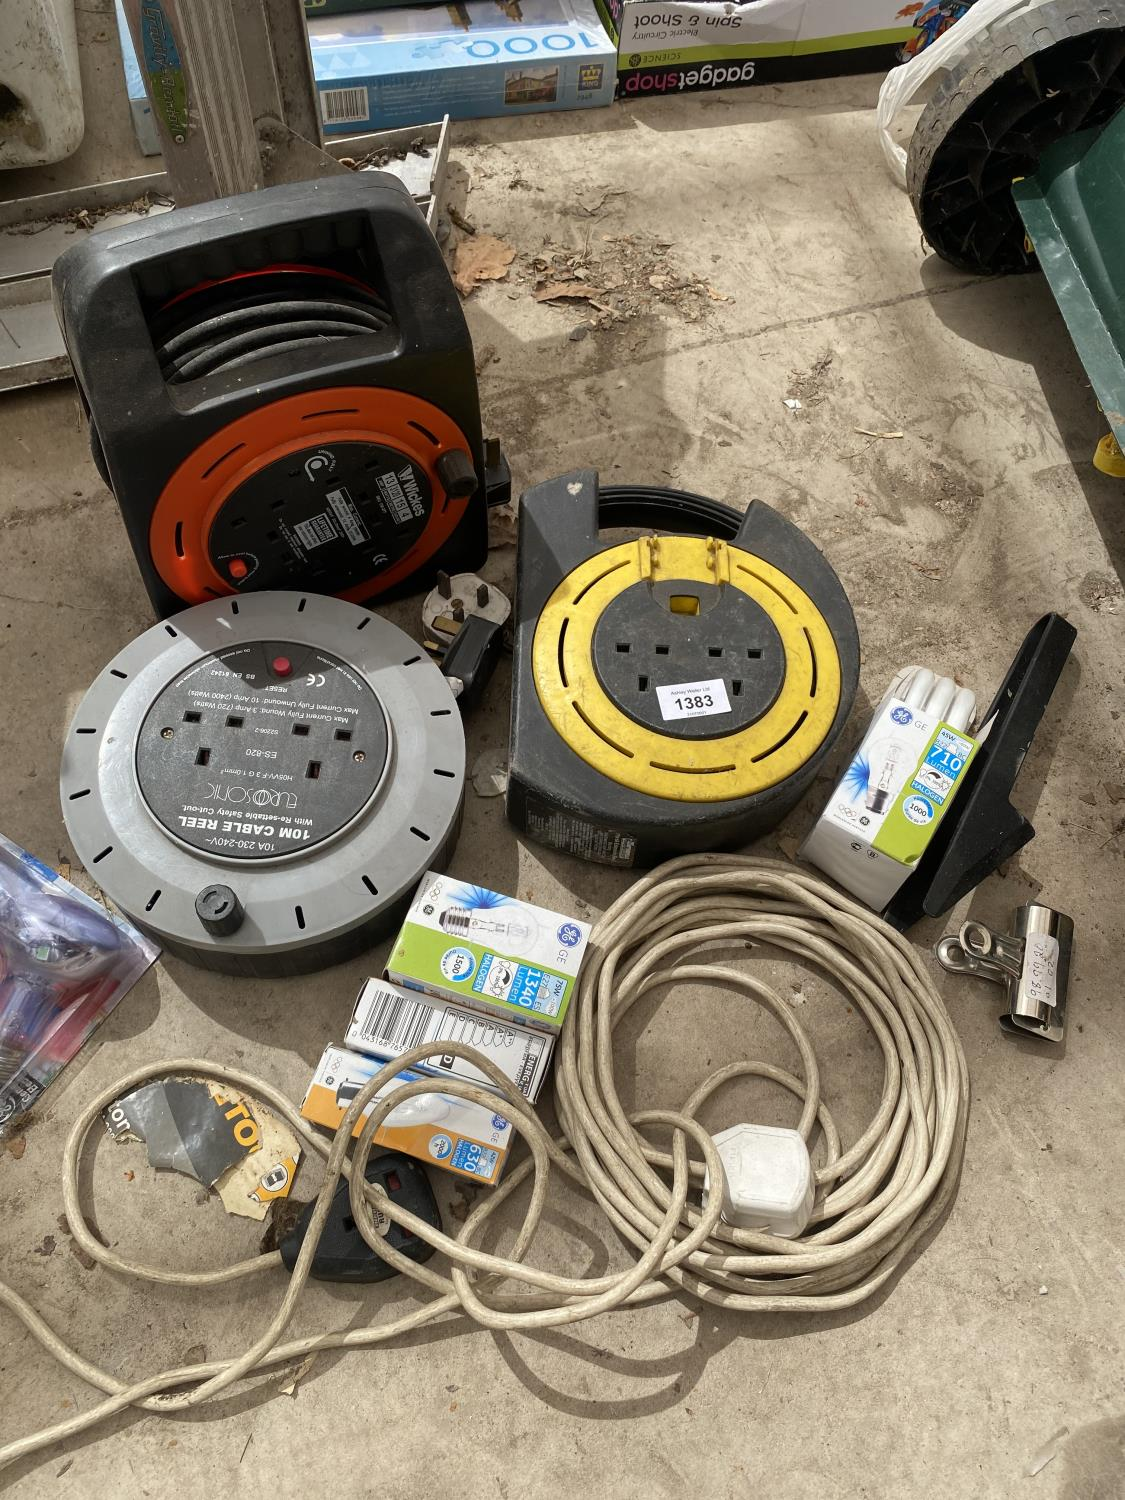 AN ASSORTMENT OF EXTENSION LEADS AND LIGHT BULBS ETC - Image 3 of 3